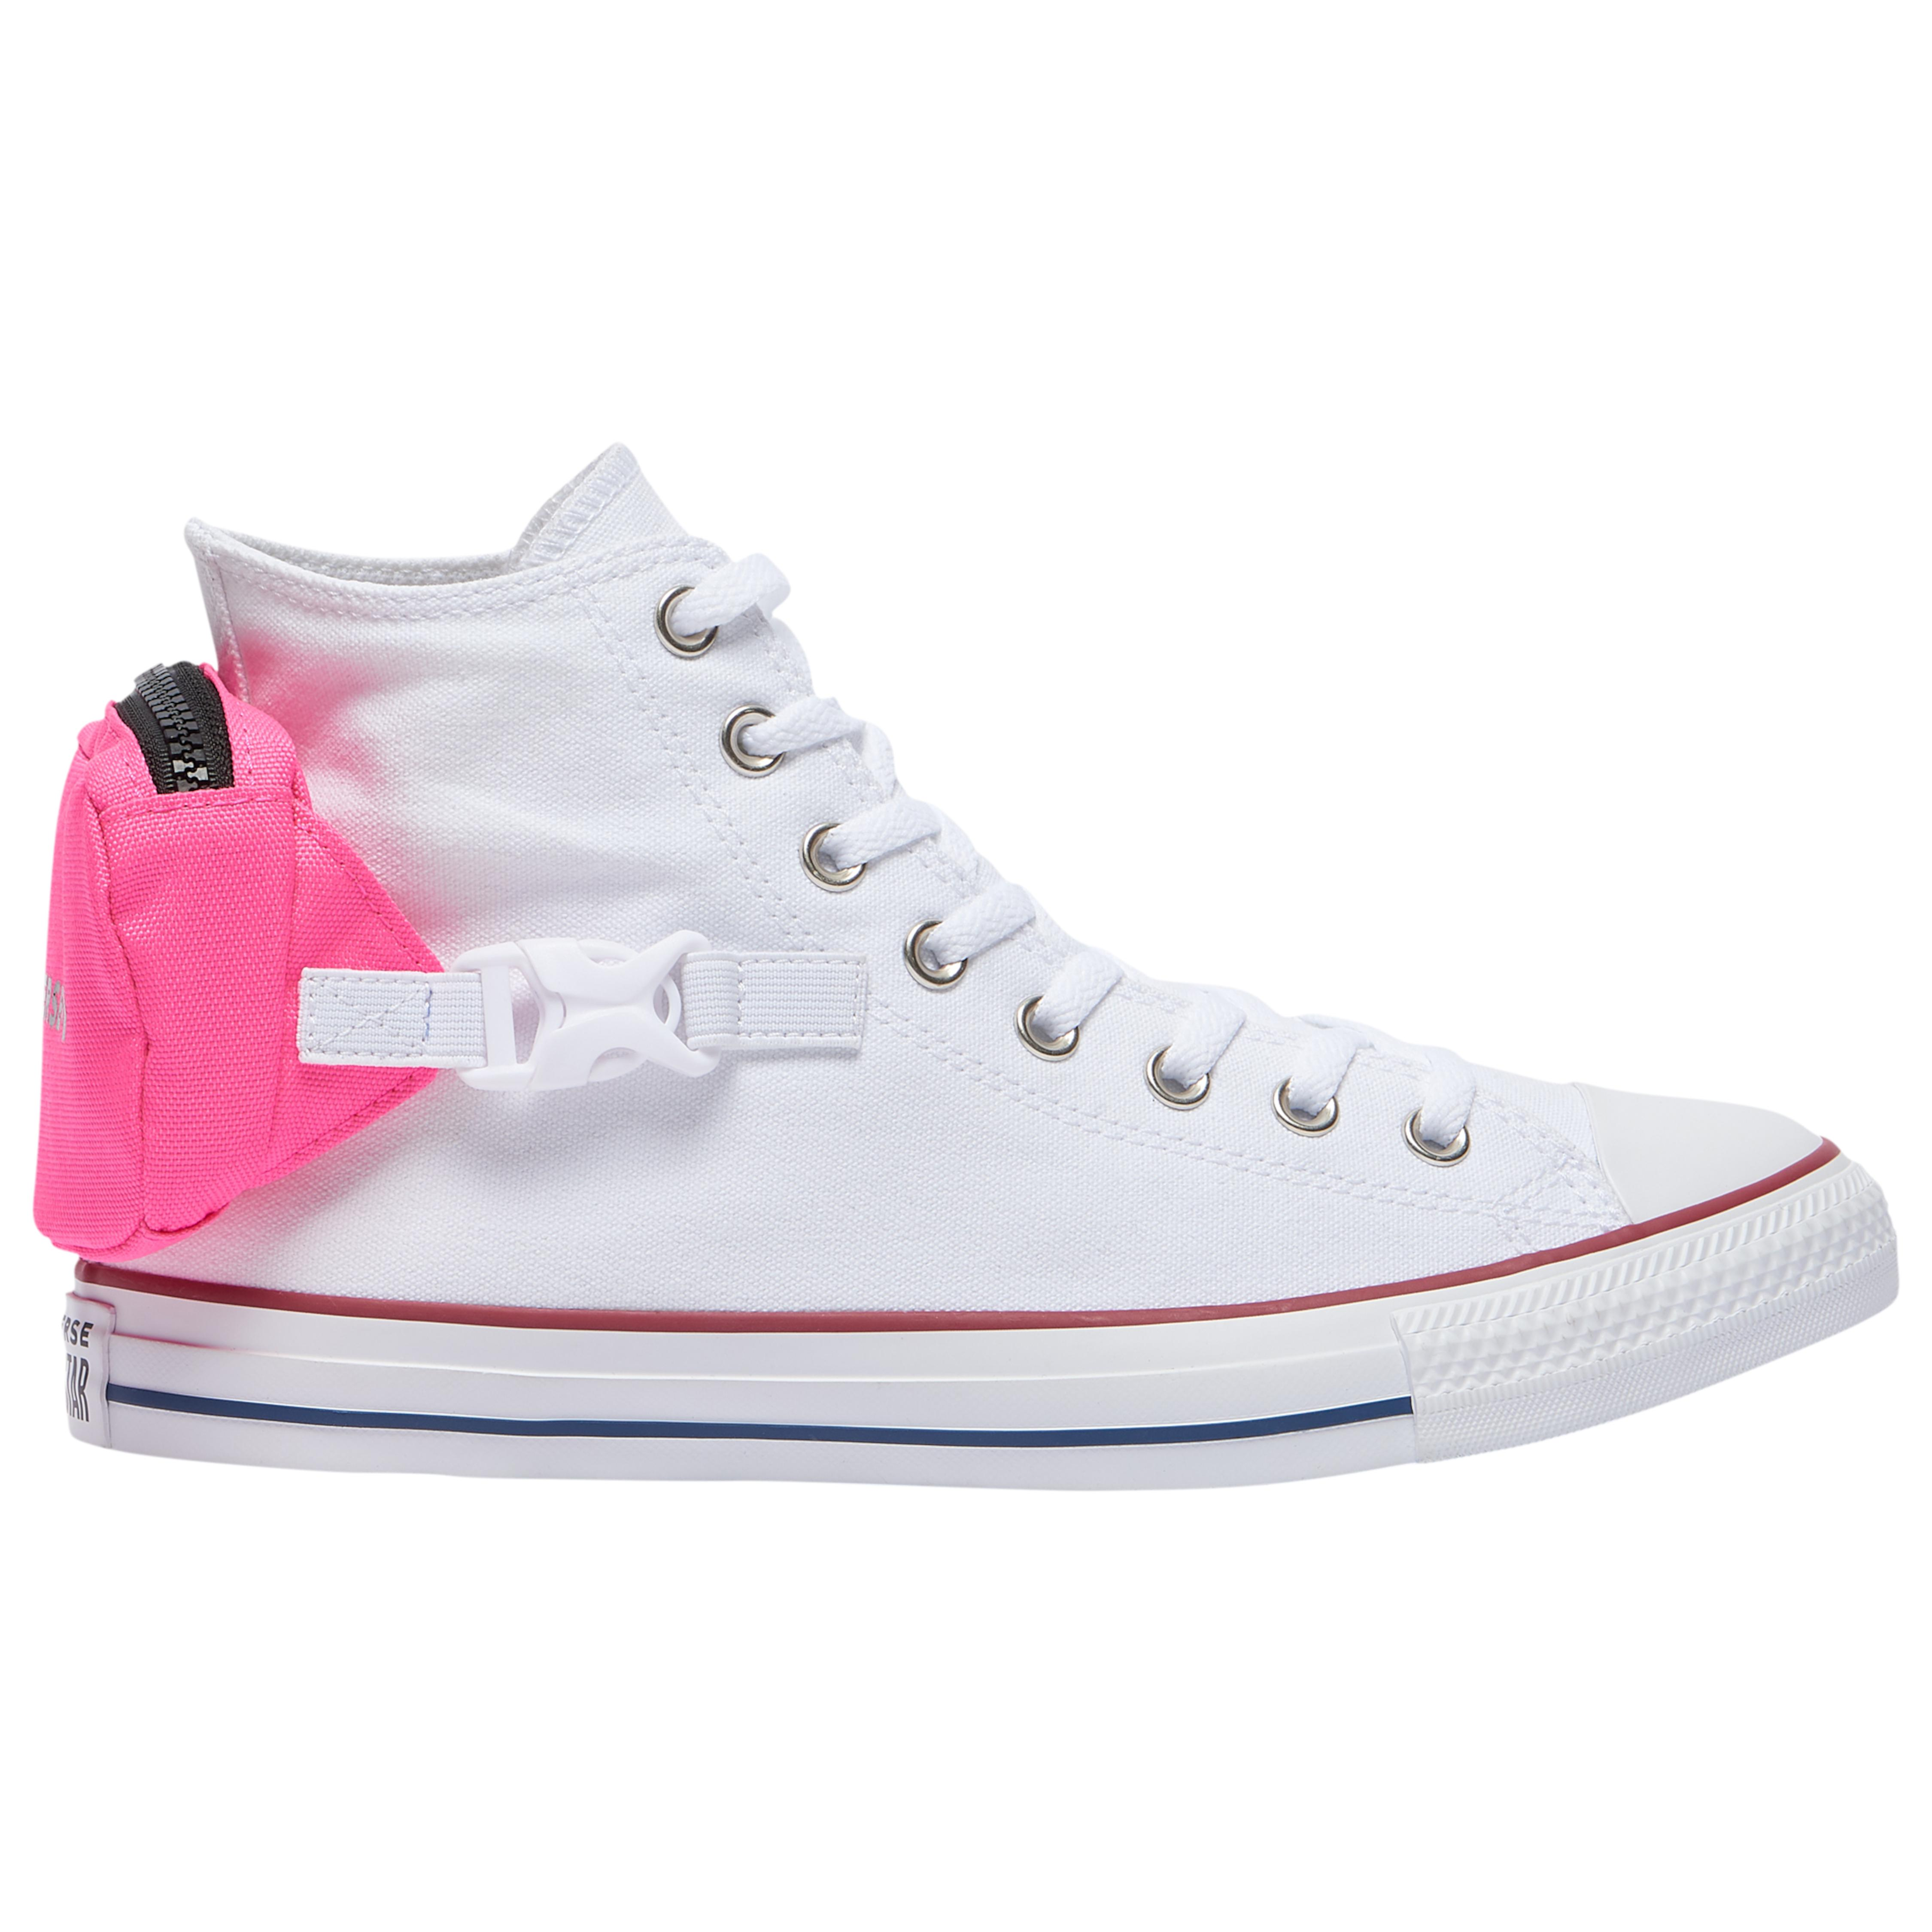 Converse Canvas Ctas Buckle Up Hi in Pink for Men - Lyst